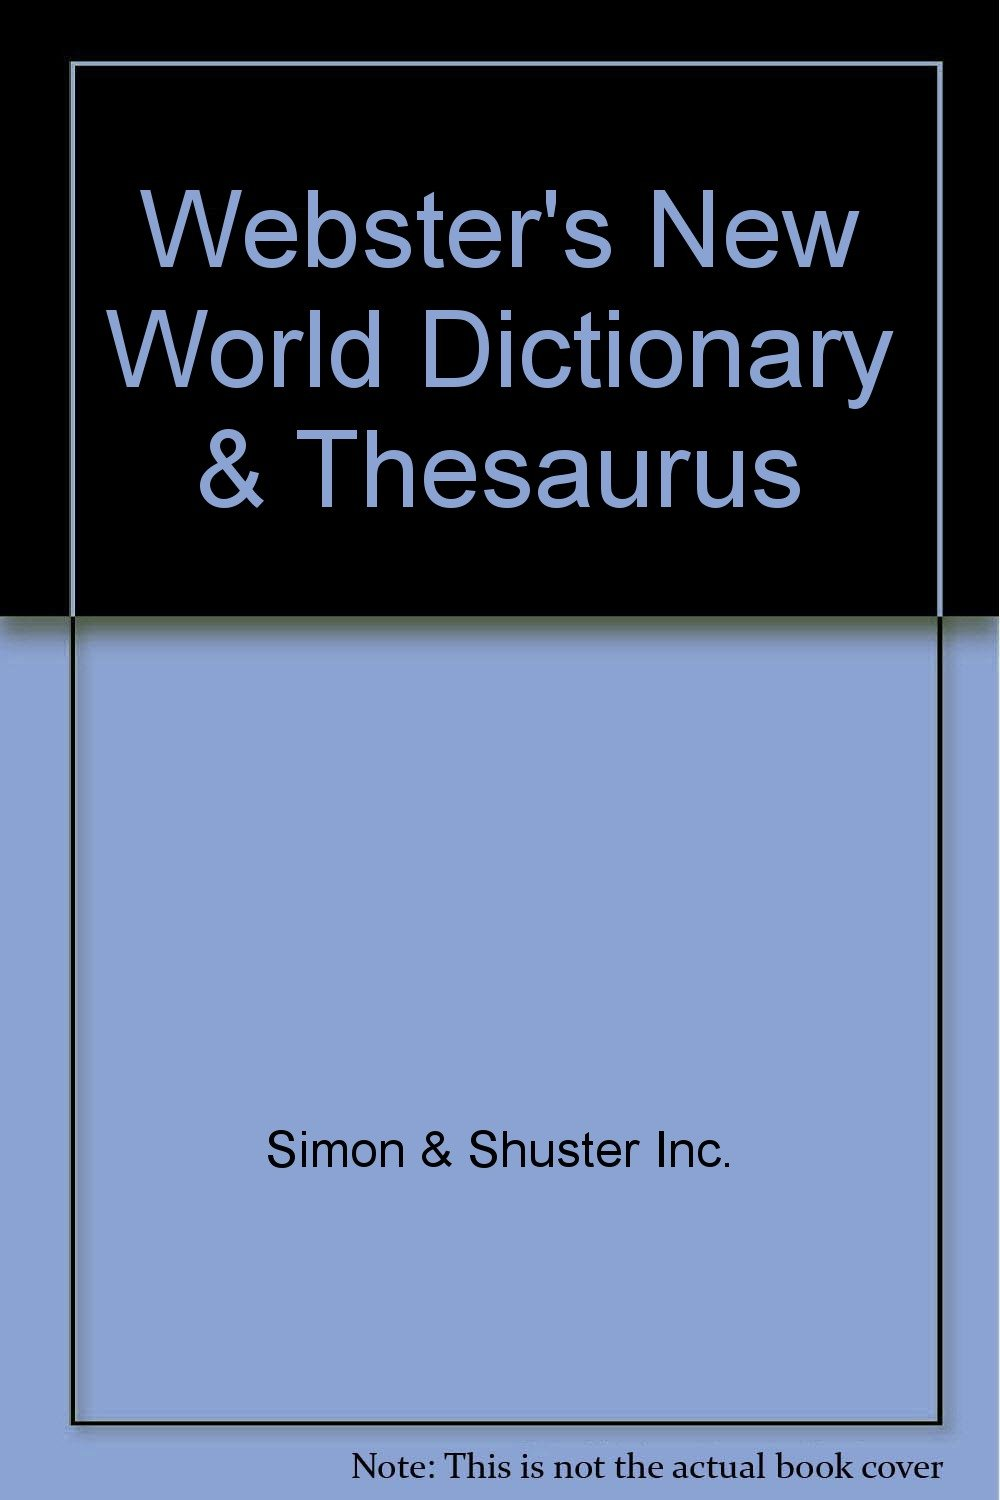 Webster's New World Dictionary & Thesaurus: Simon & Shuster